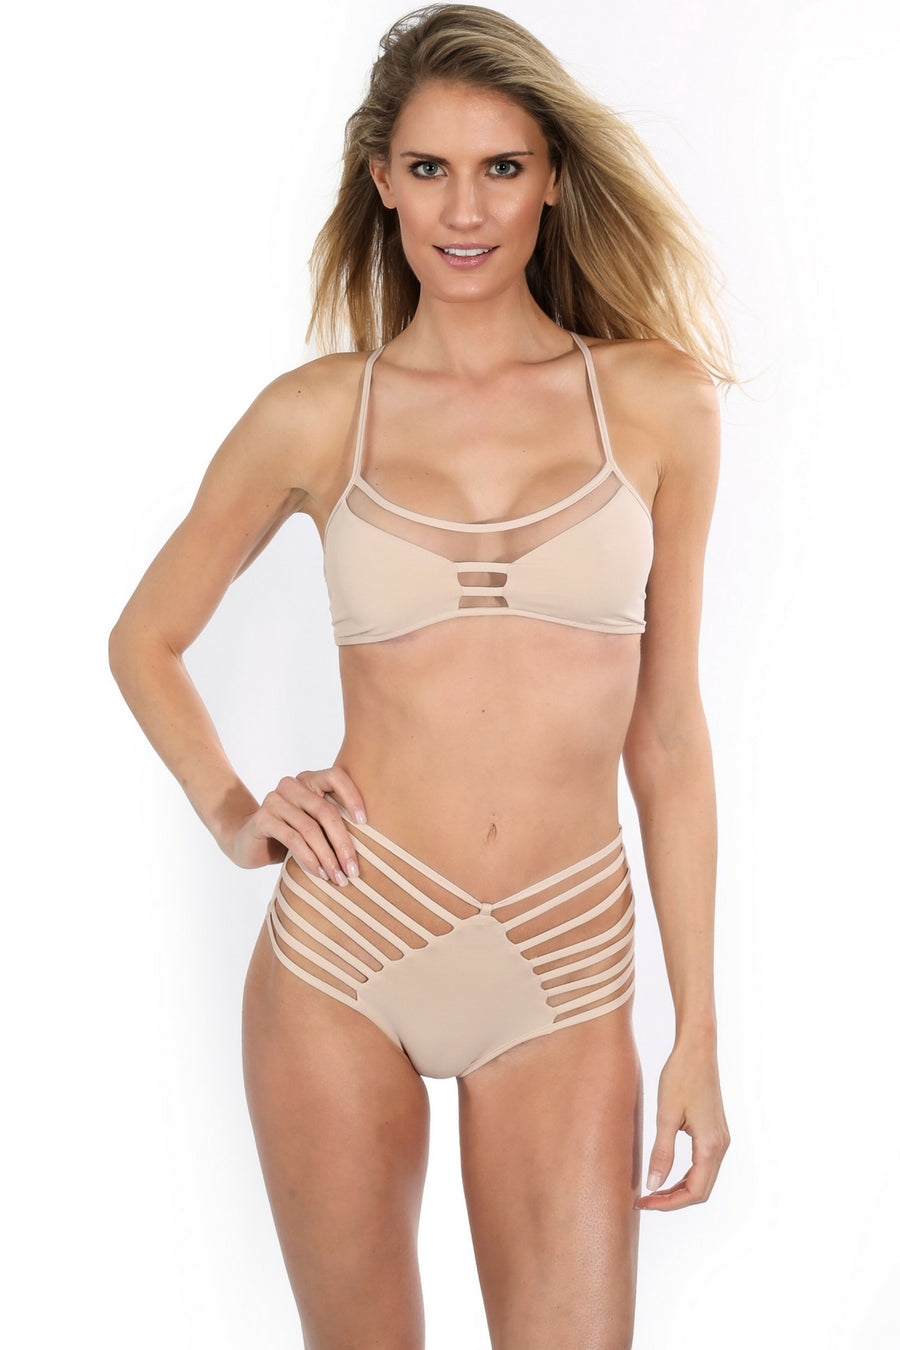 high waist nude strappy cut out bikini bottoms